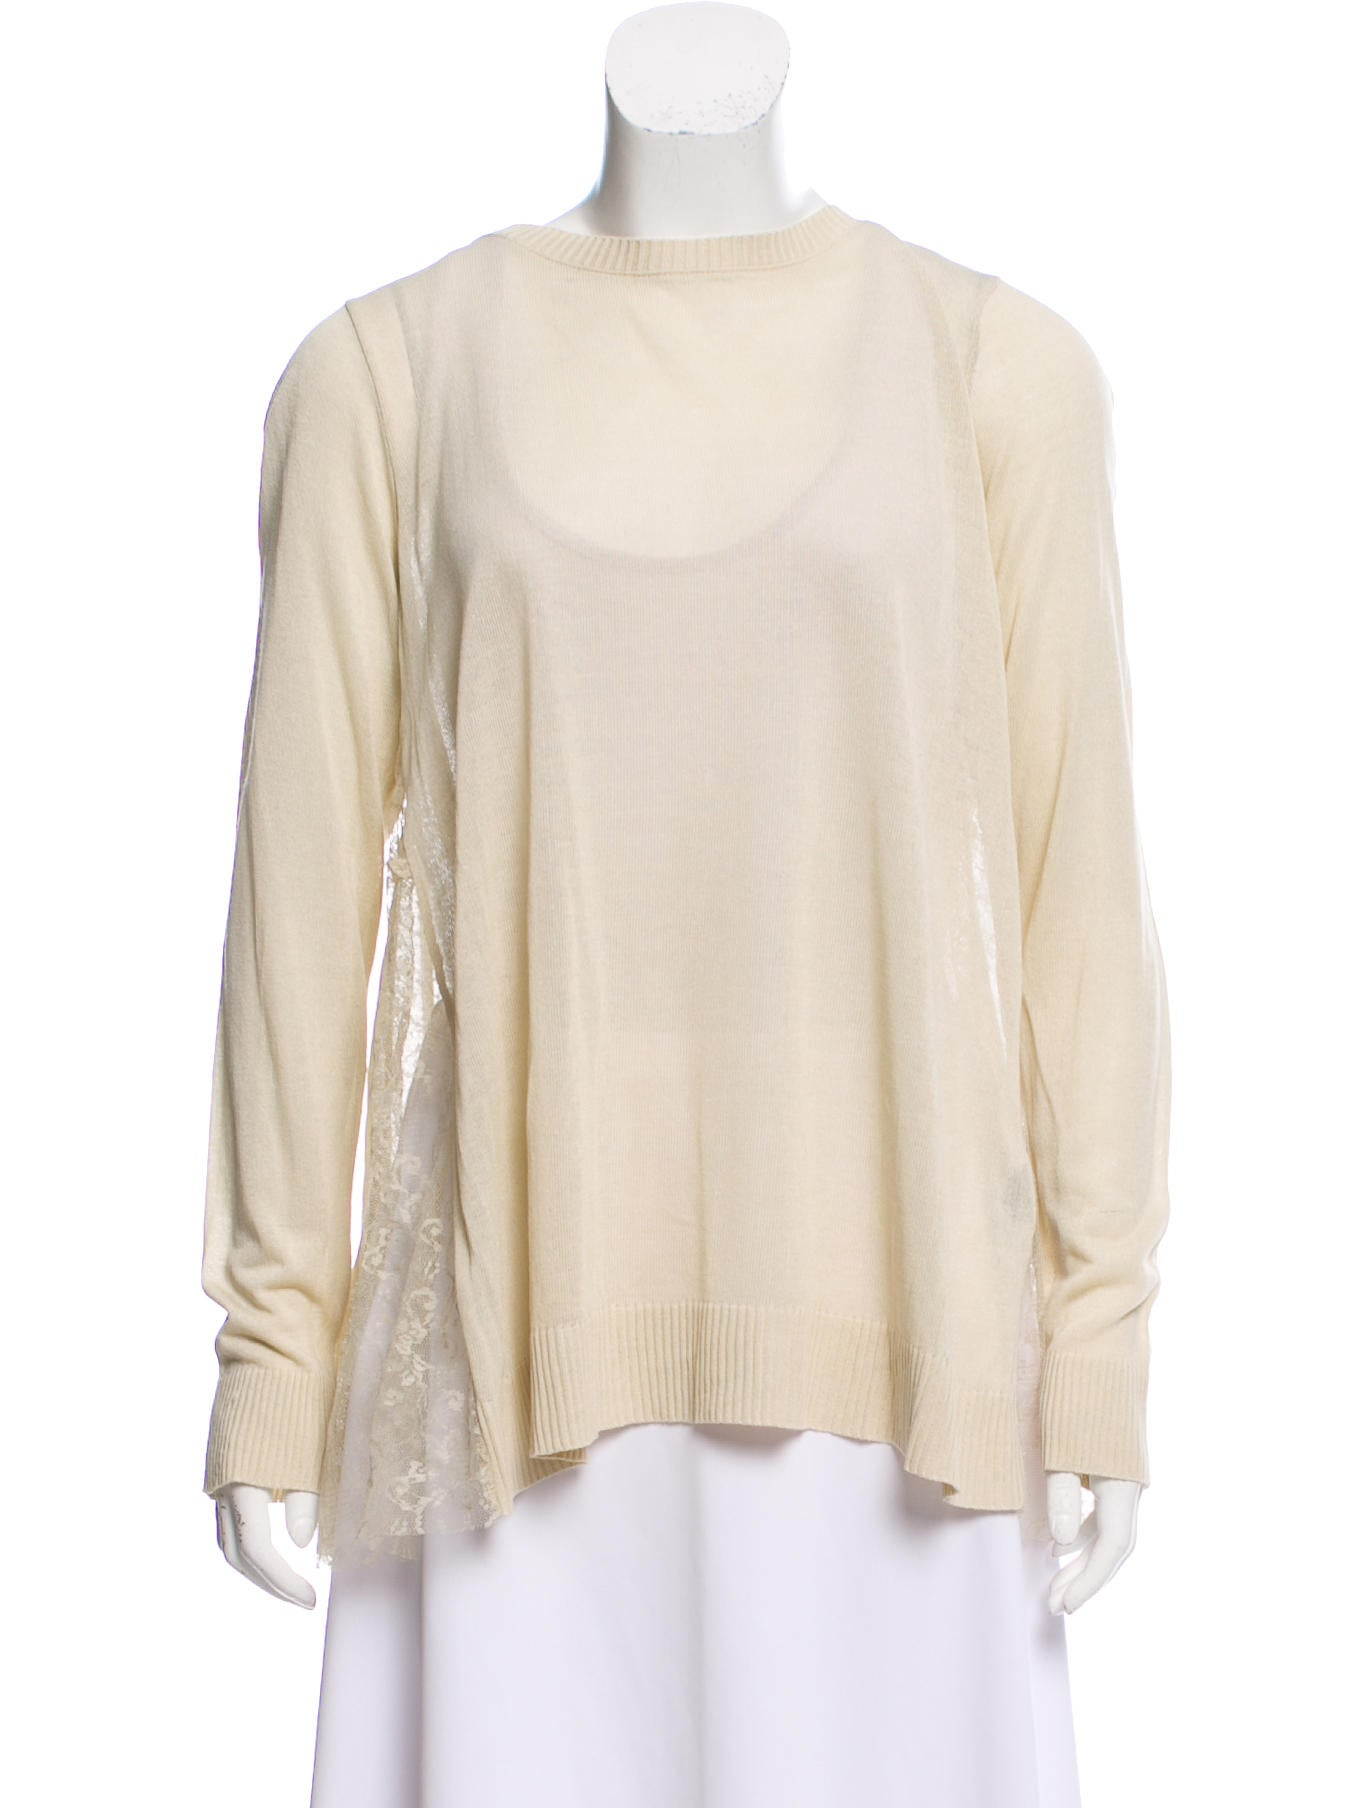 Hôtel Particulier Lace-Accented Scoop Neck Sweater w  Tags ... 6e4e7a2fd45